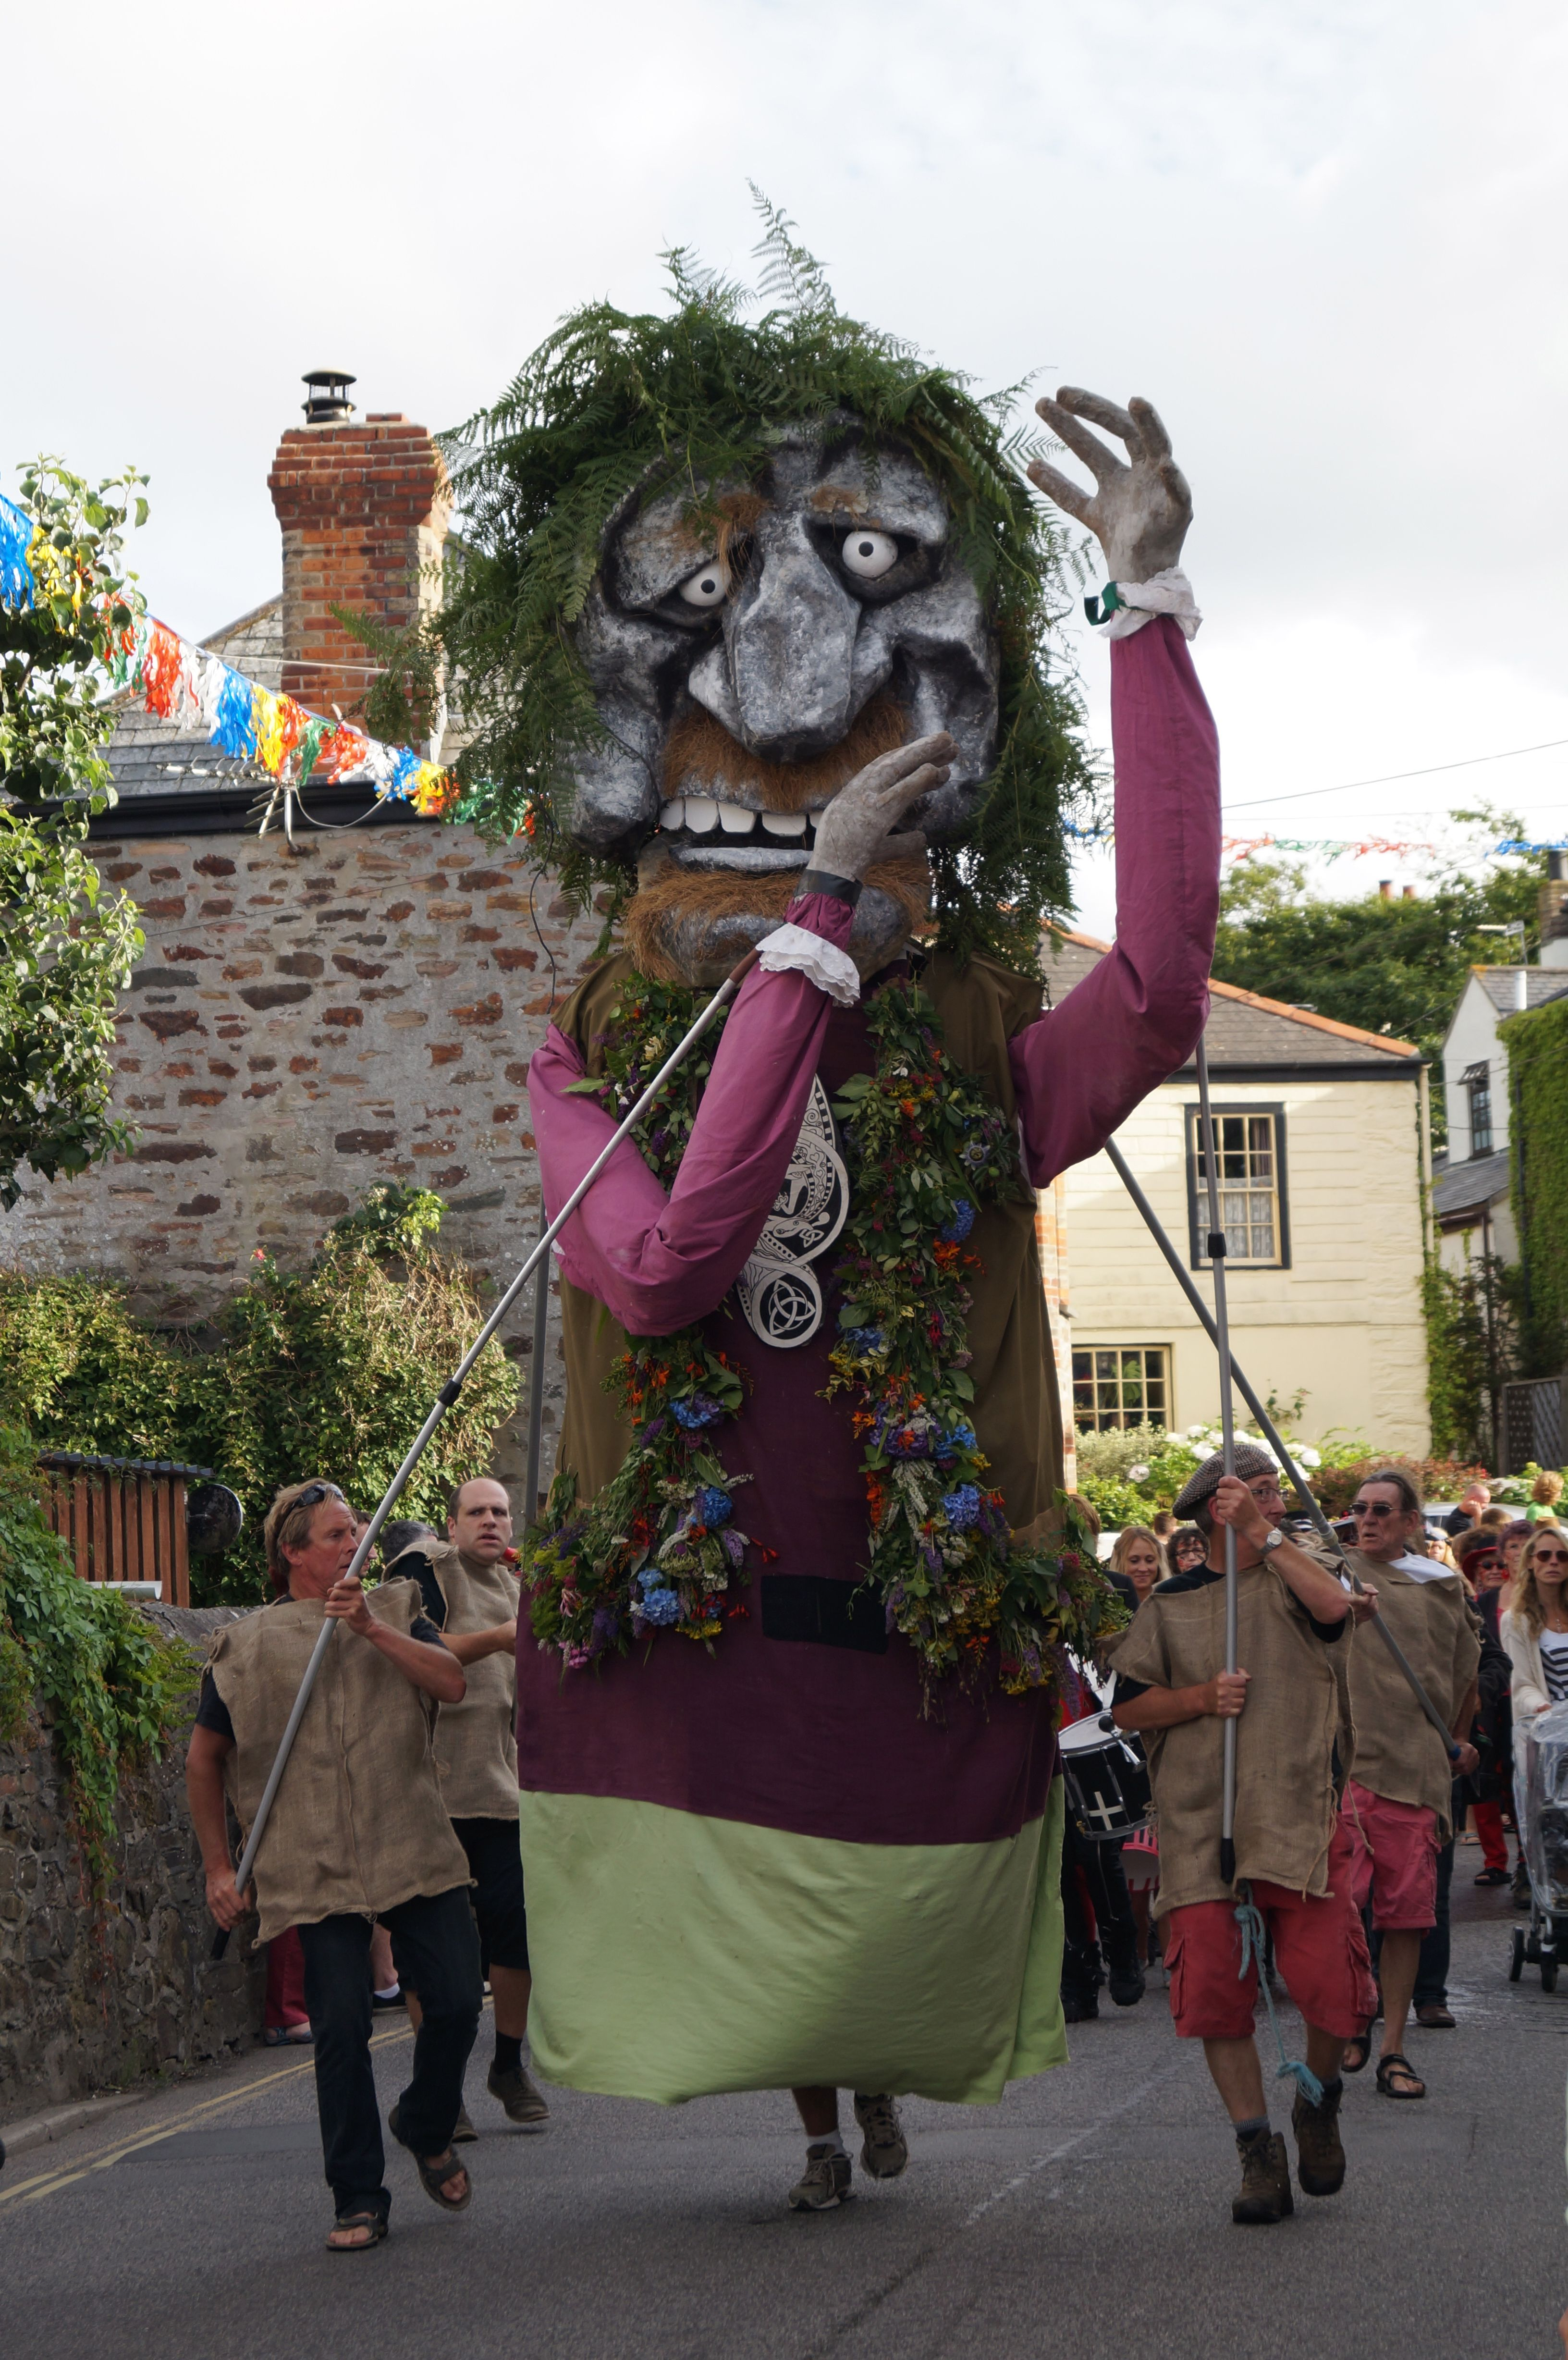 The Bolster Giant Puppet, St Agnes Carnival, in Cornwall 2013. Photo taken by Tracey-Jane Anderson